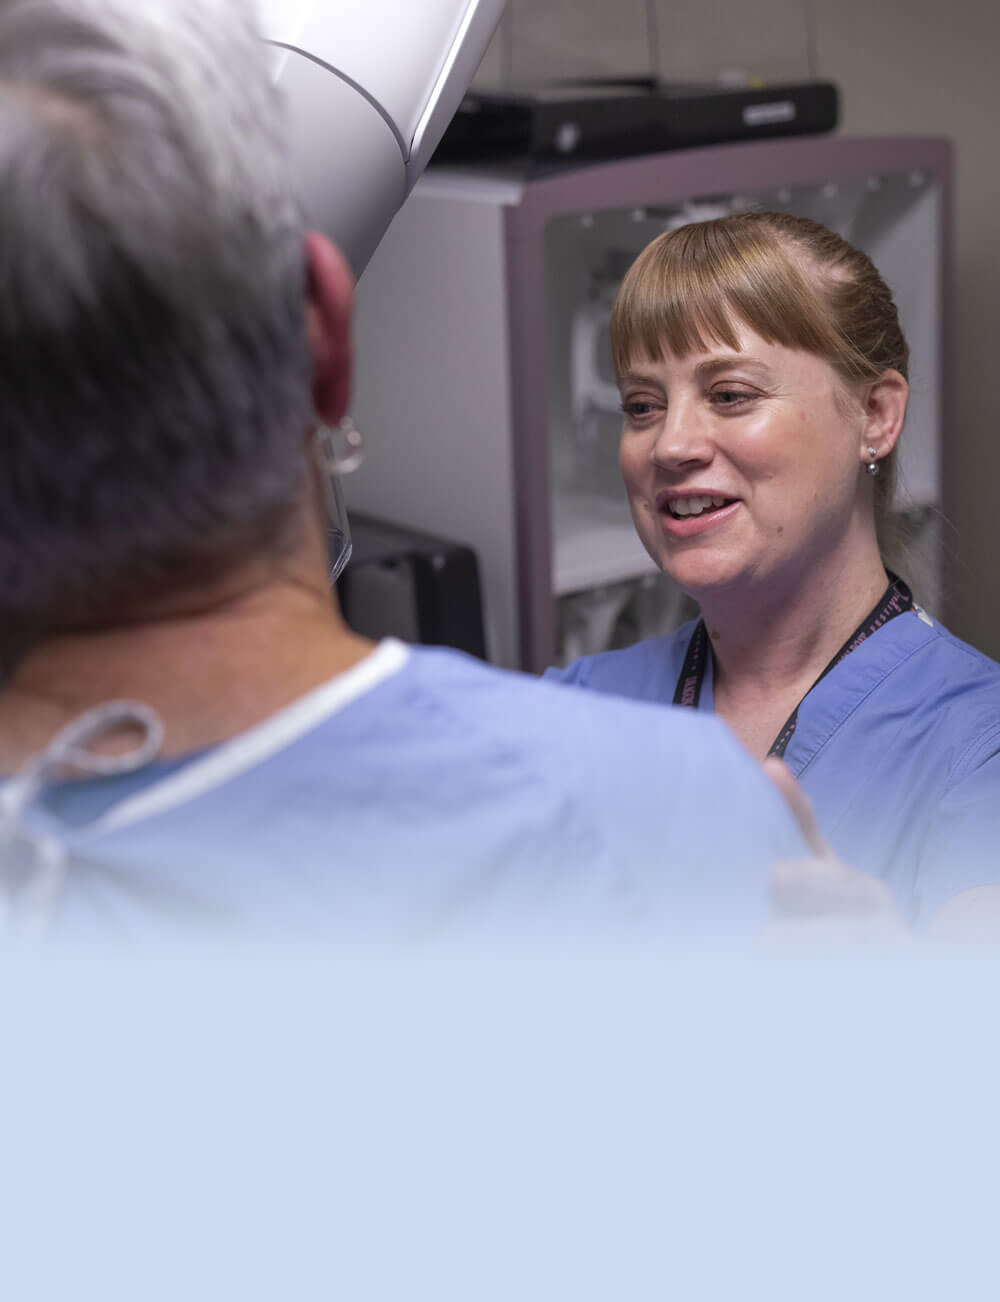 Mammography doctor smiling at patient